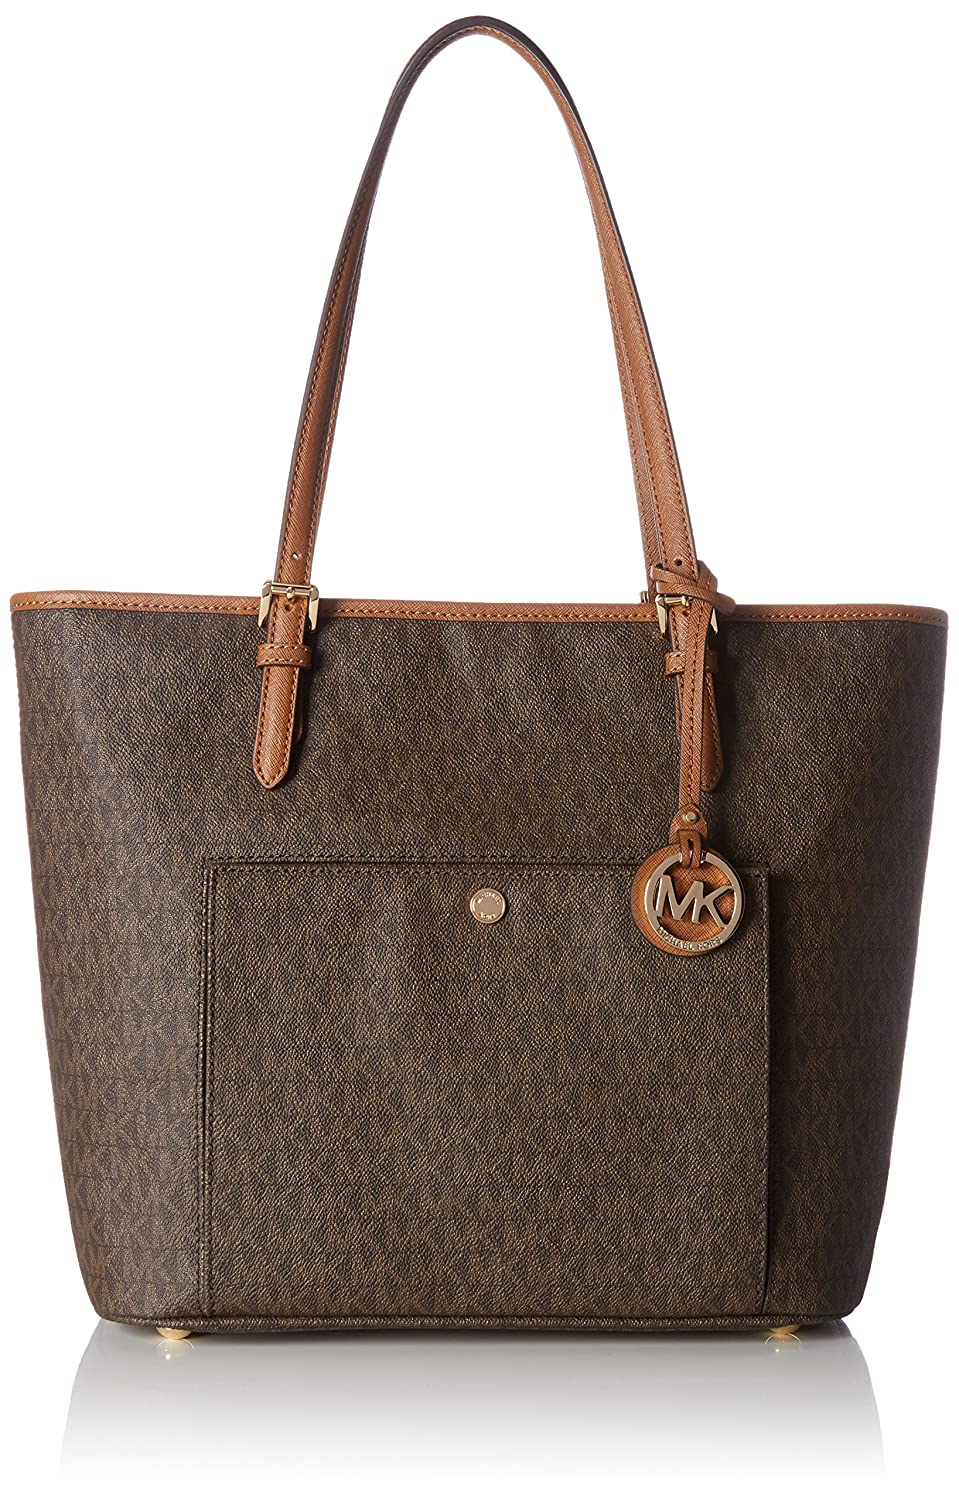 58804f851b5 Buy Michael Kors Women s Shoulder Bag Online at Low Prices in India -  Amazon.in